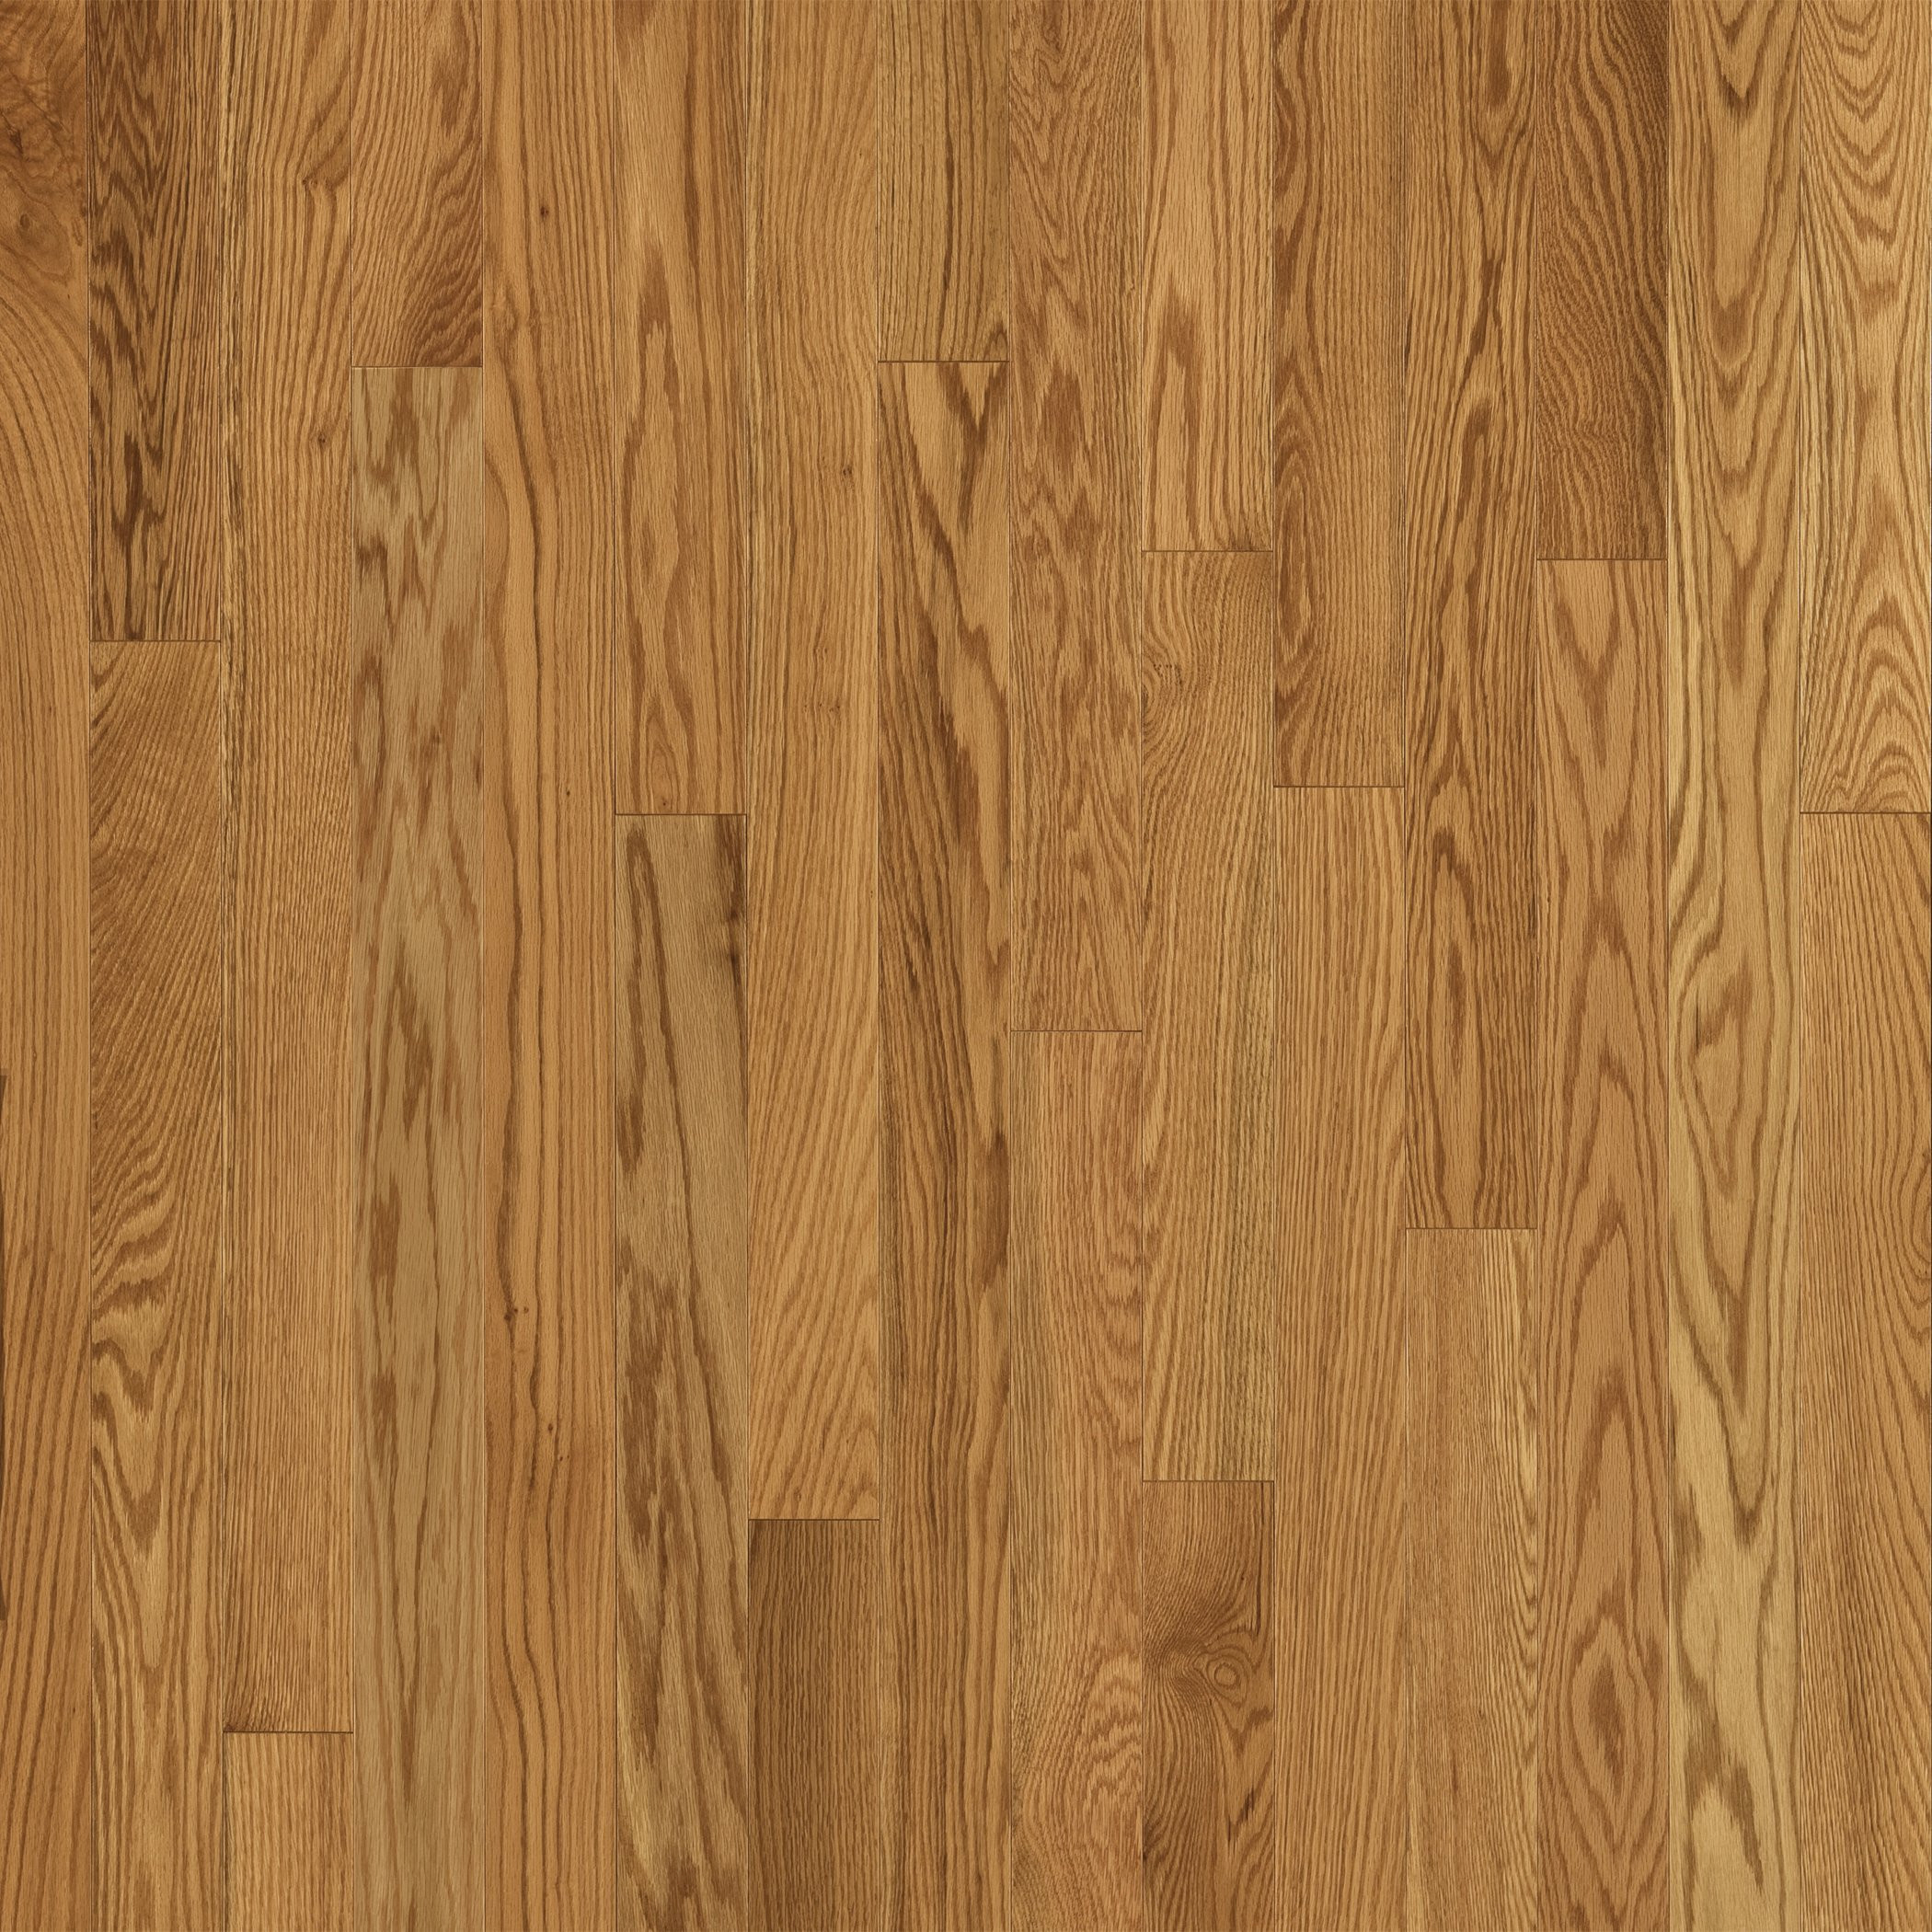 Red Oak Hardwood Flooring Cost Of Refinishing My Hardwood Floors Sanding Progress Wood Floor Water Damage Inside 28 Best Oak Floor Red Oak Natural Hardwood Flooring